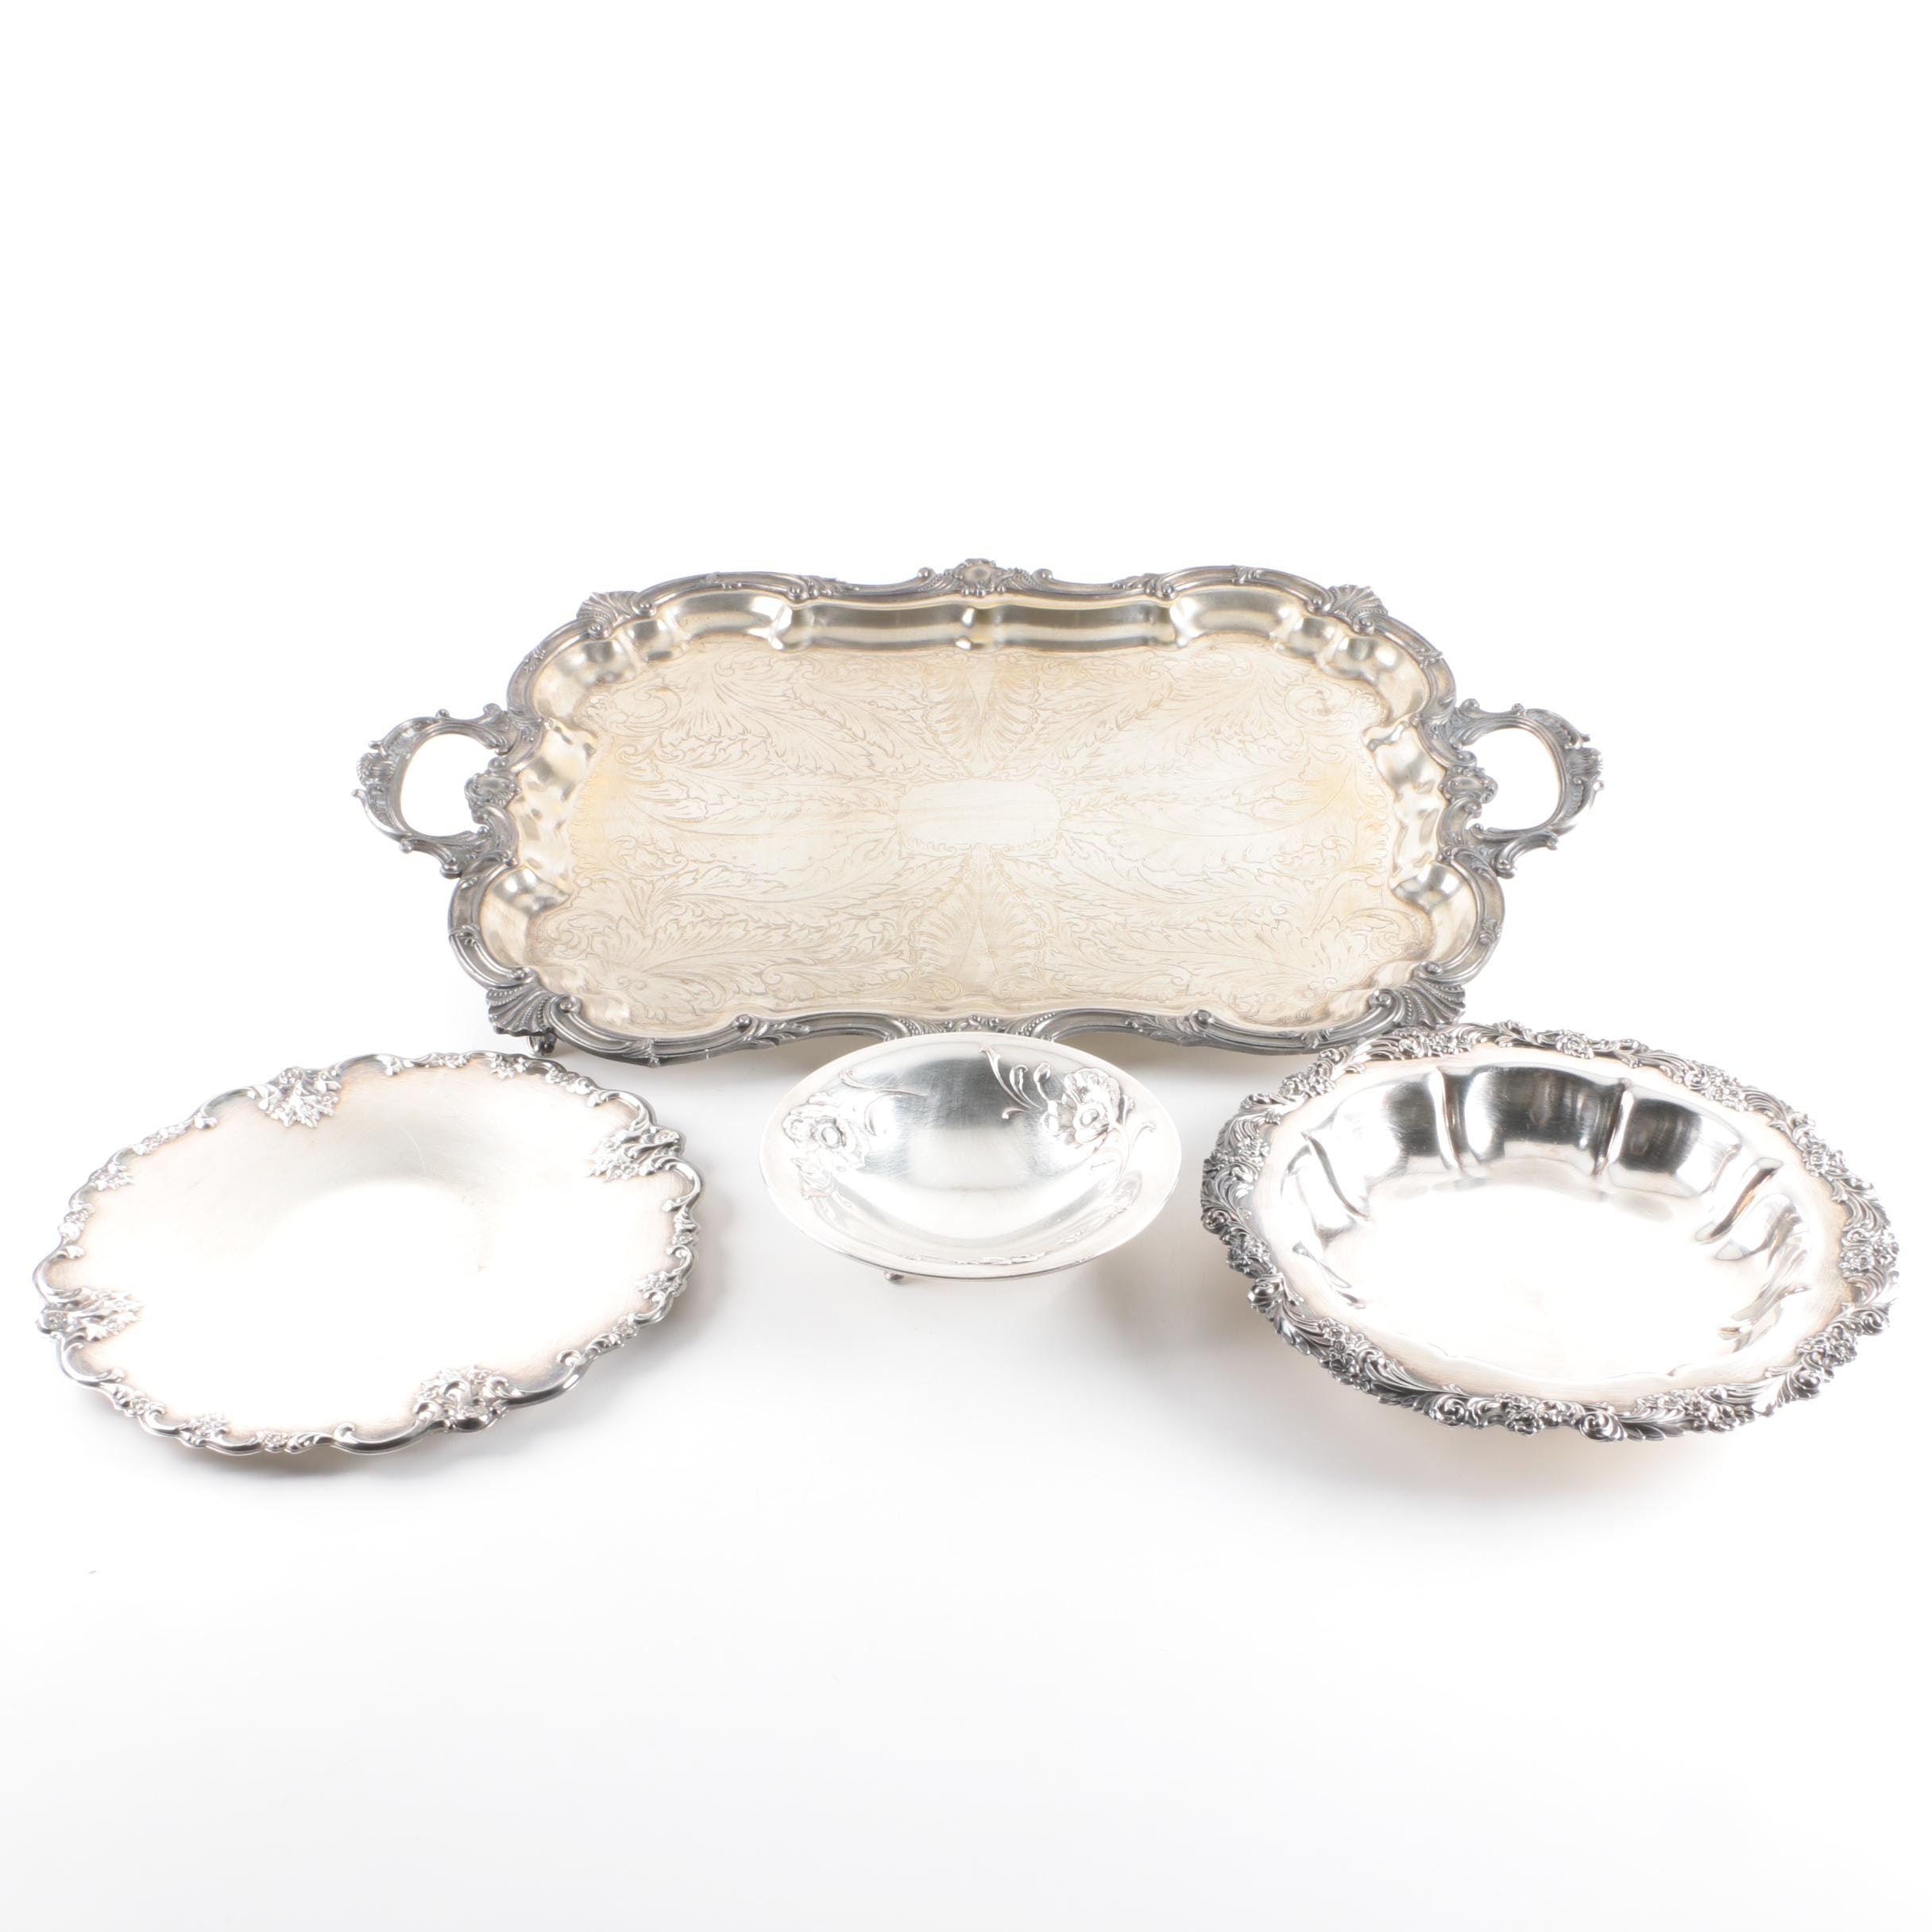 Birmingham Silver Co. Scroll-and-Shell Rimmed Tray with Silver Plate Serveware